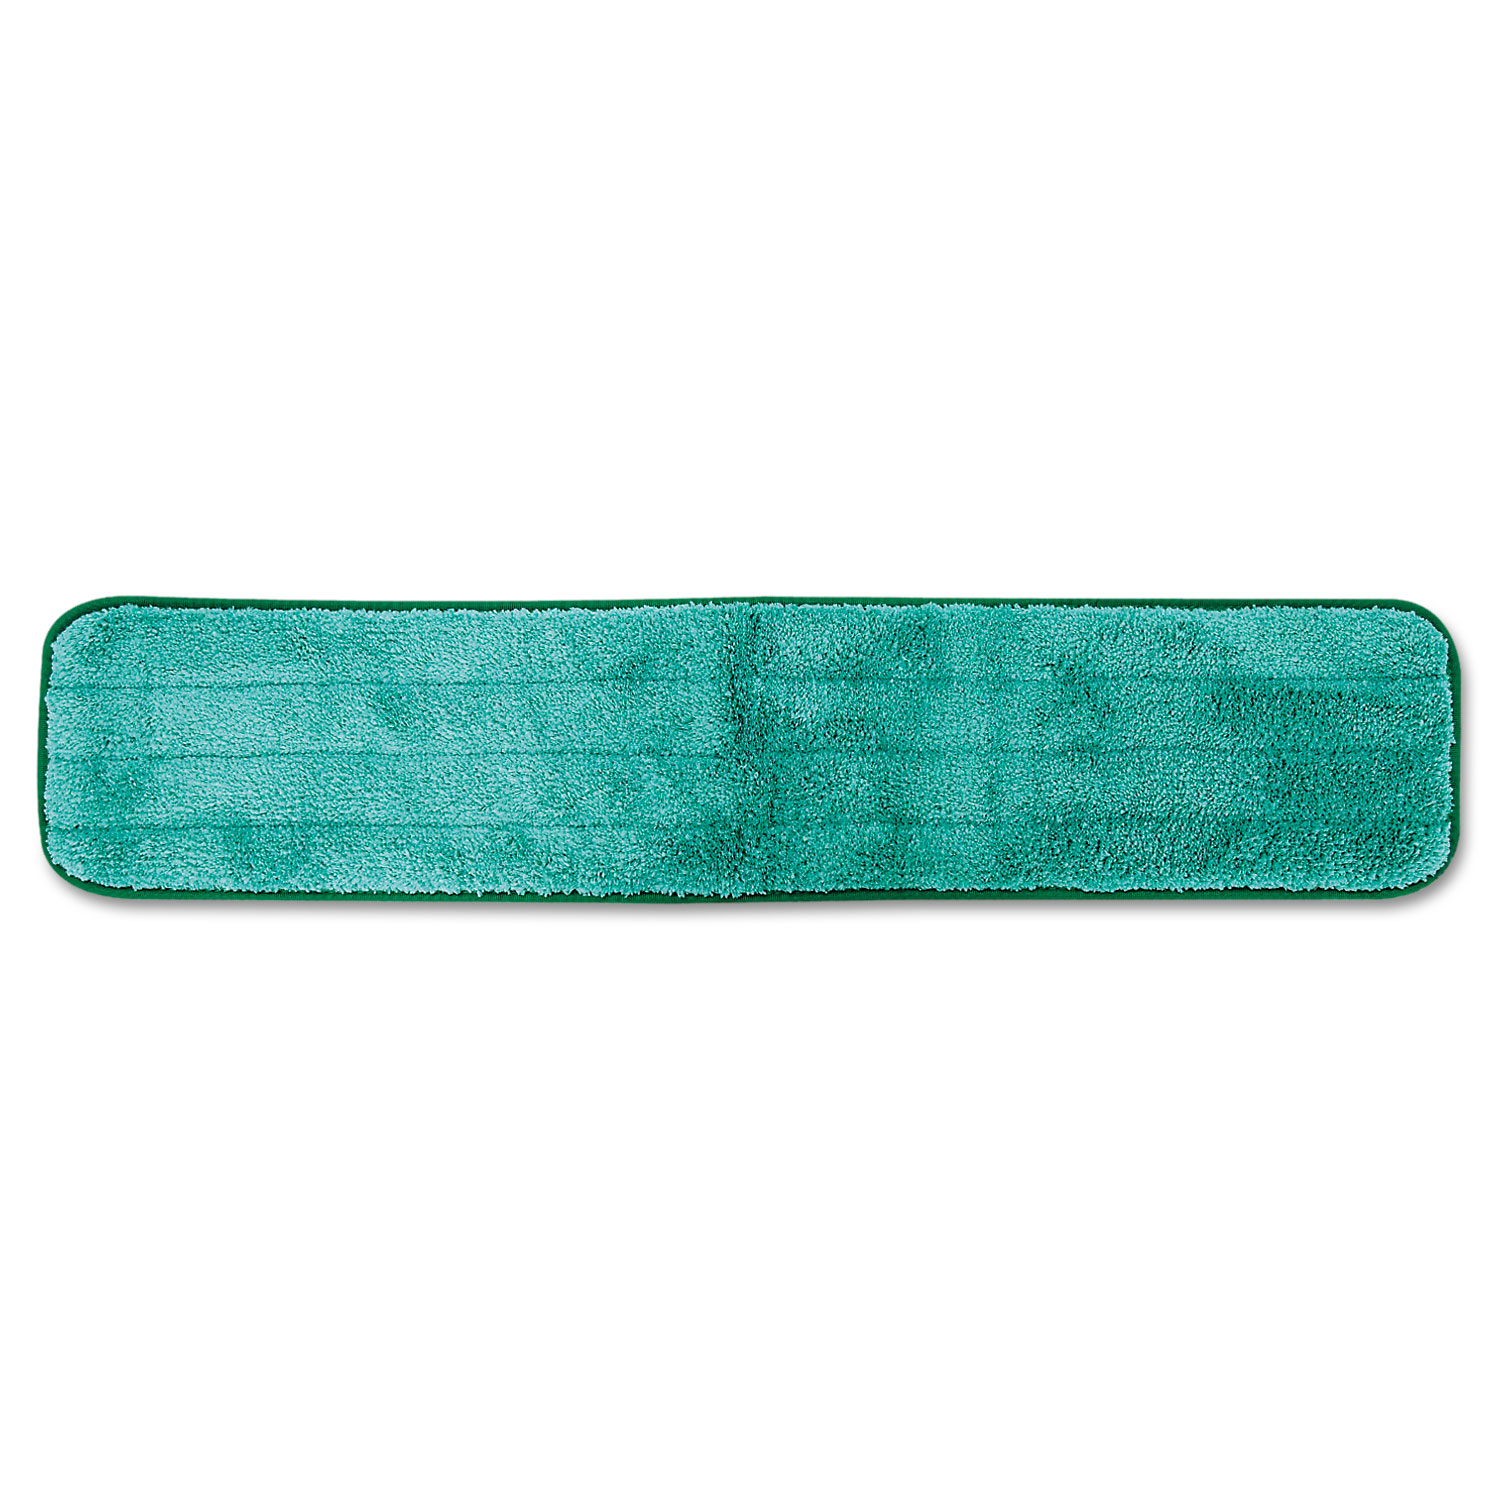 Dry Hall Dusting Pad Microfiber 24 Long Green Stone Printing Office Supply